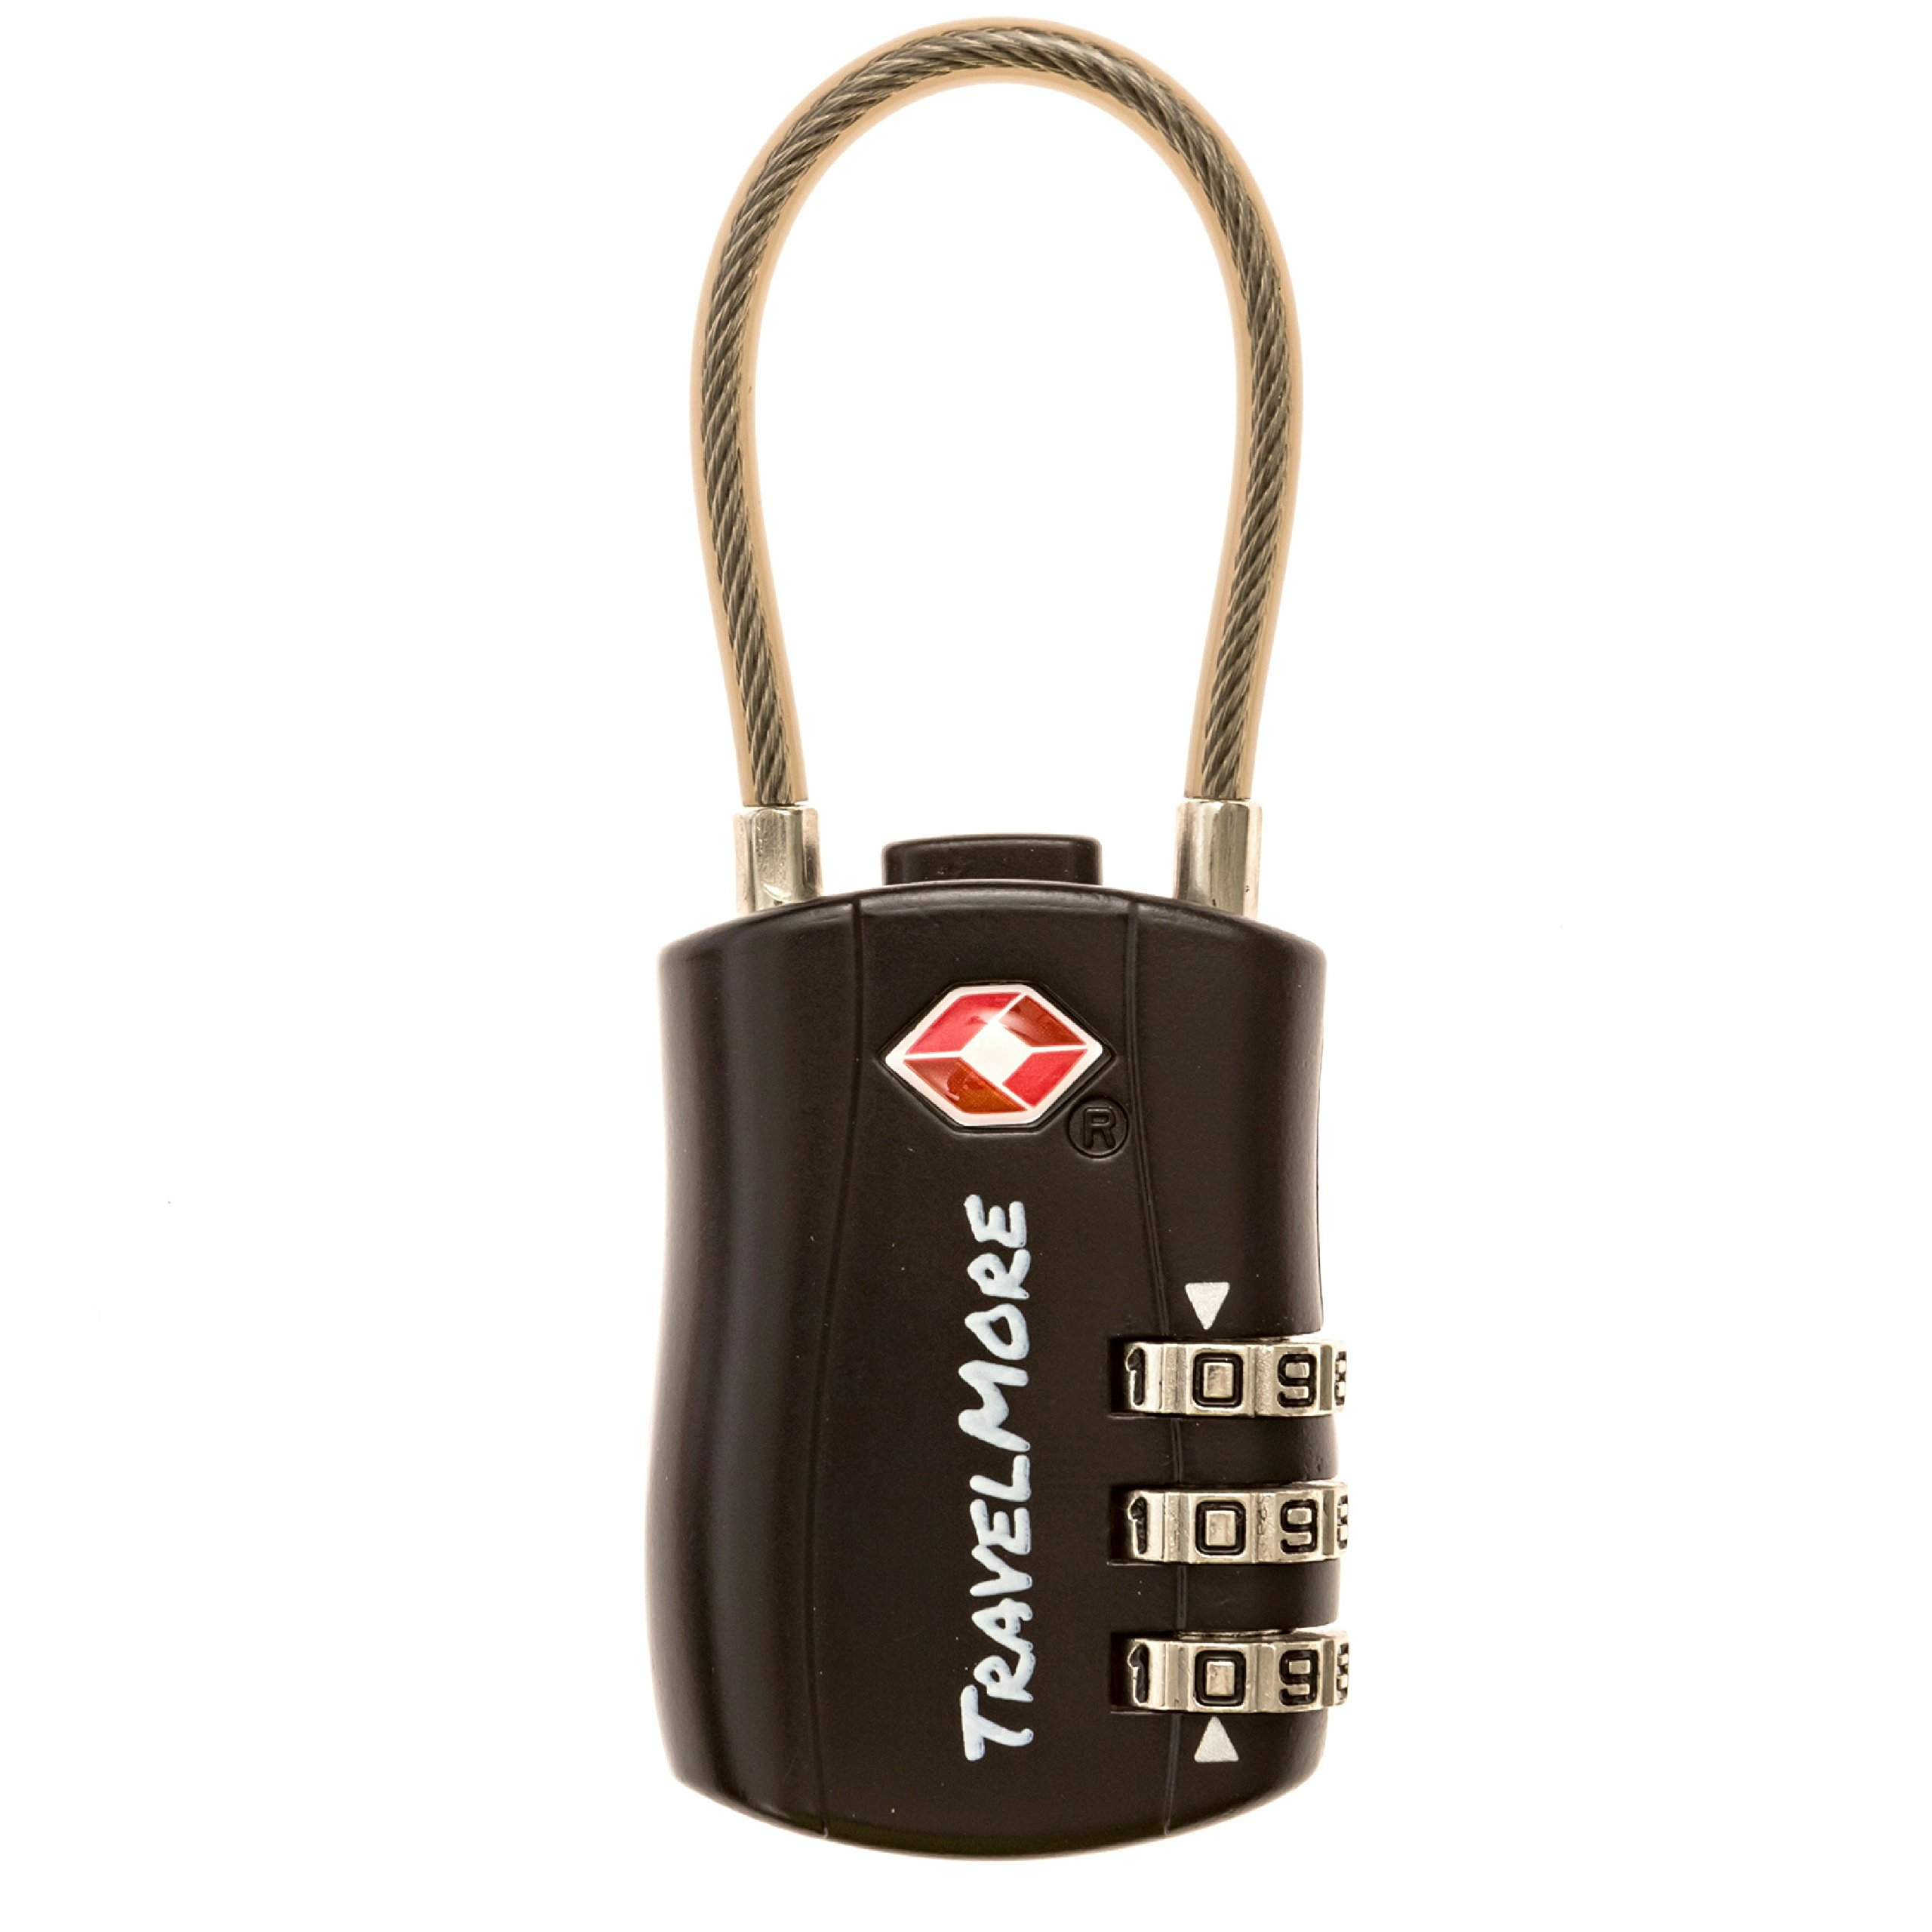 2 Pack TSA Approved Travel Combination Cable Luggage Locks for Suitcases & Backpacks - Black by TravelMore (Image #2)